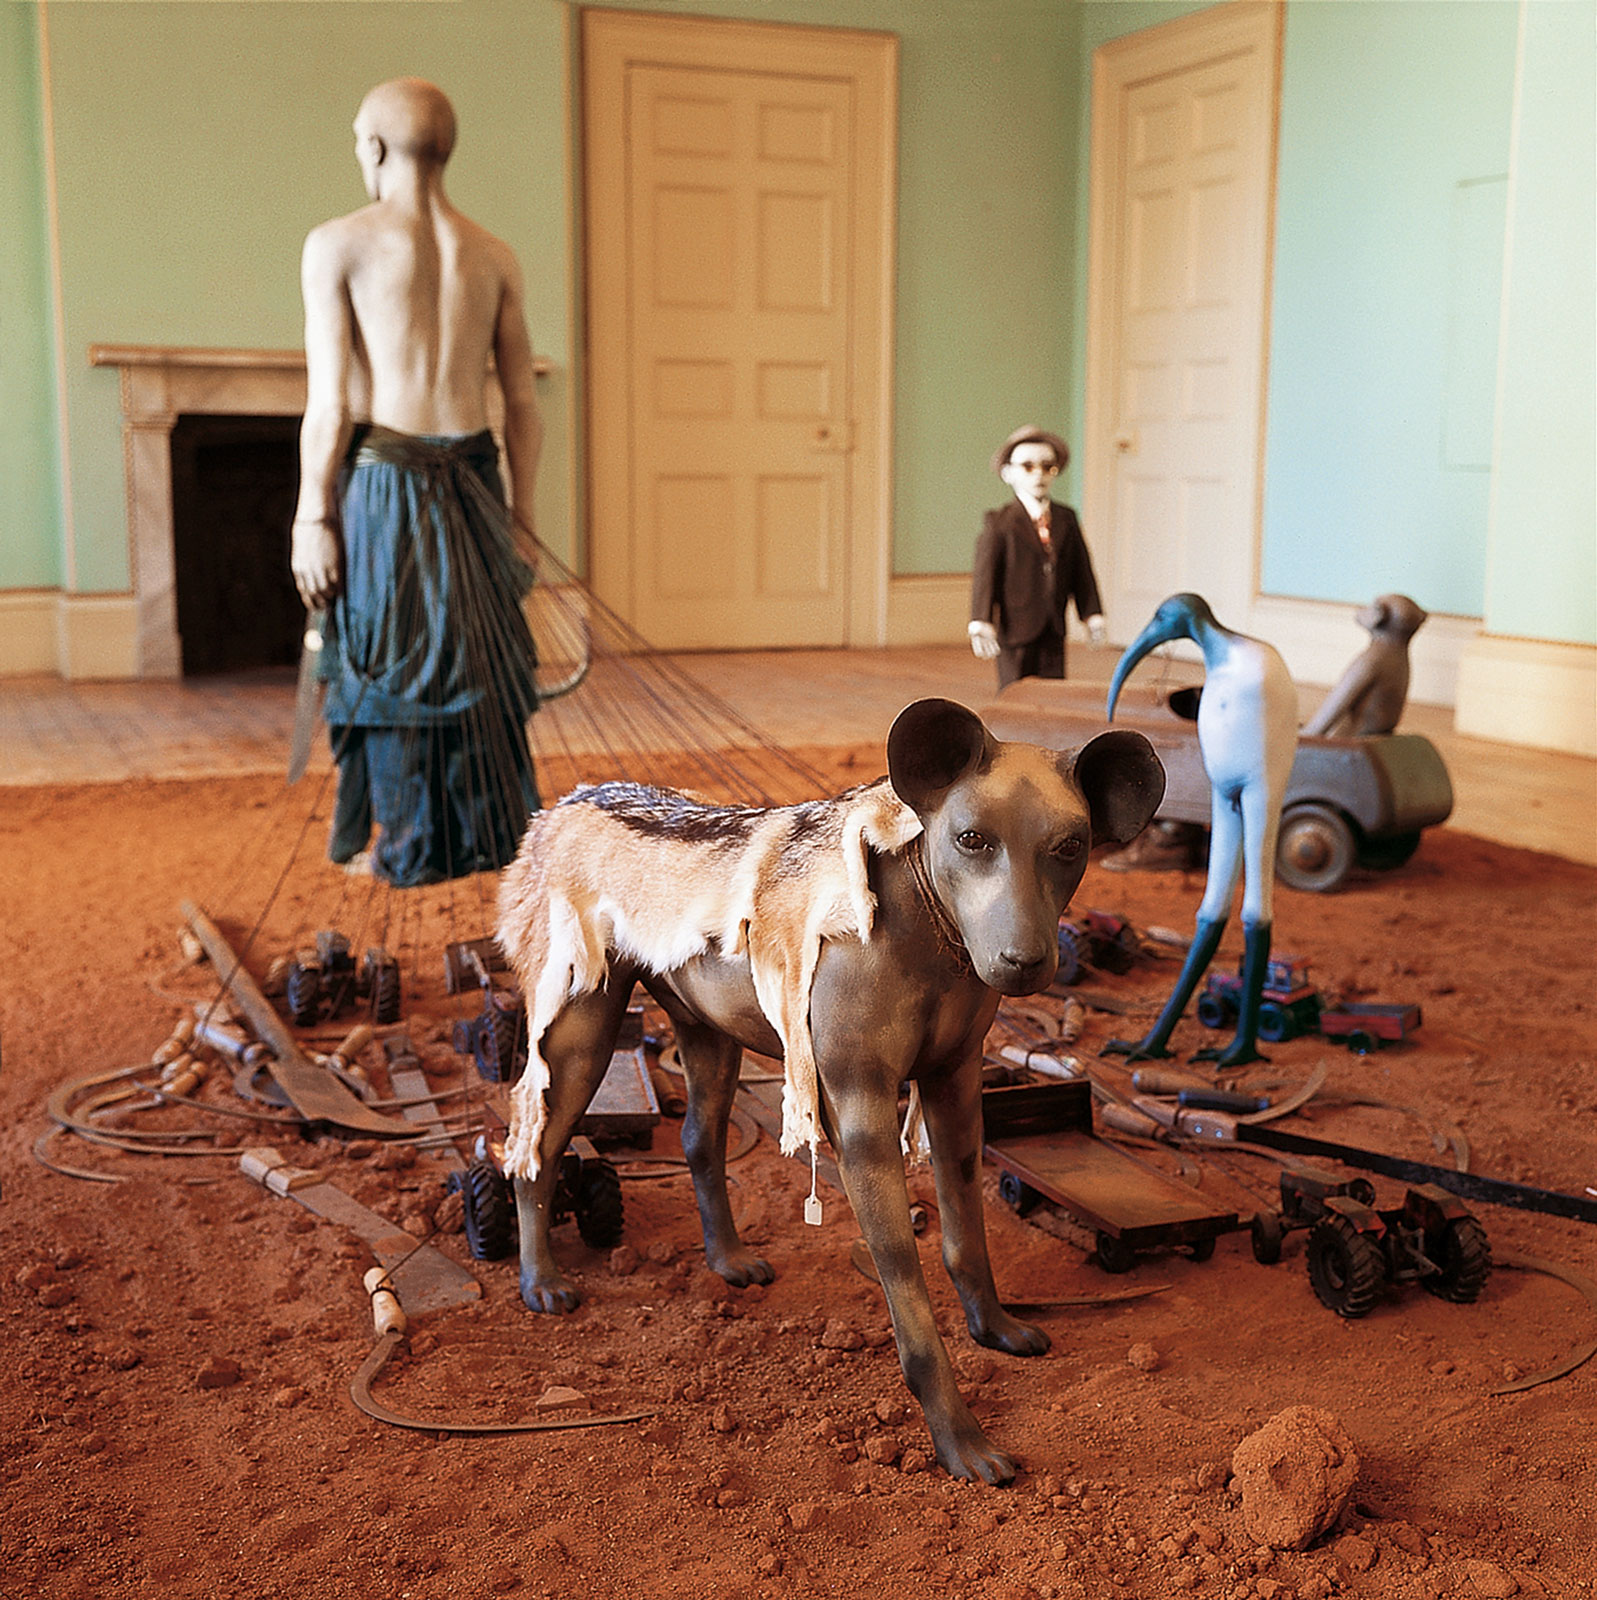 <i>African Adventure</i> detail (1999–2002). Installation: British Officers' Mess, Castle of Good Hope, Cape Town. Photograph by Mark Lewis. (See preceding caption for further information)